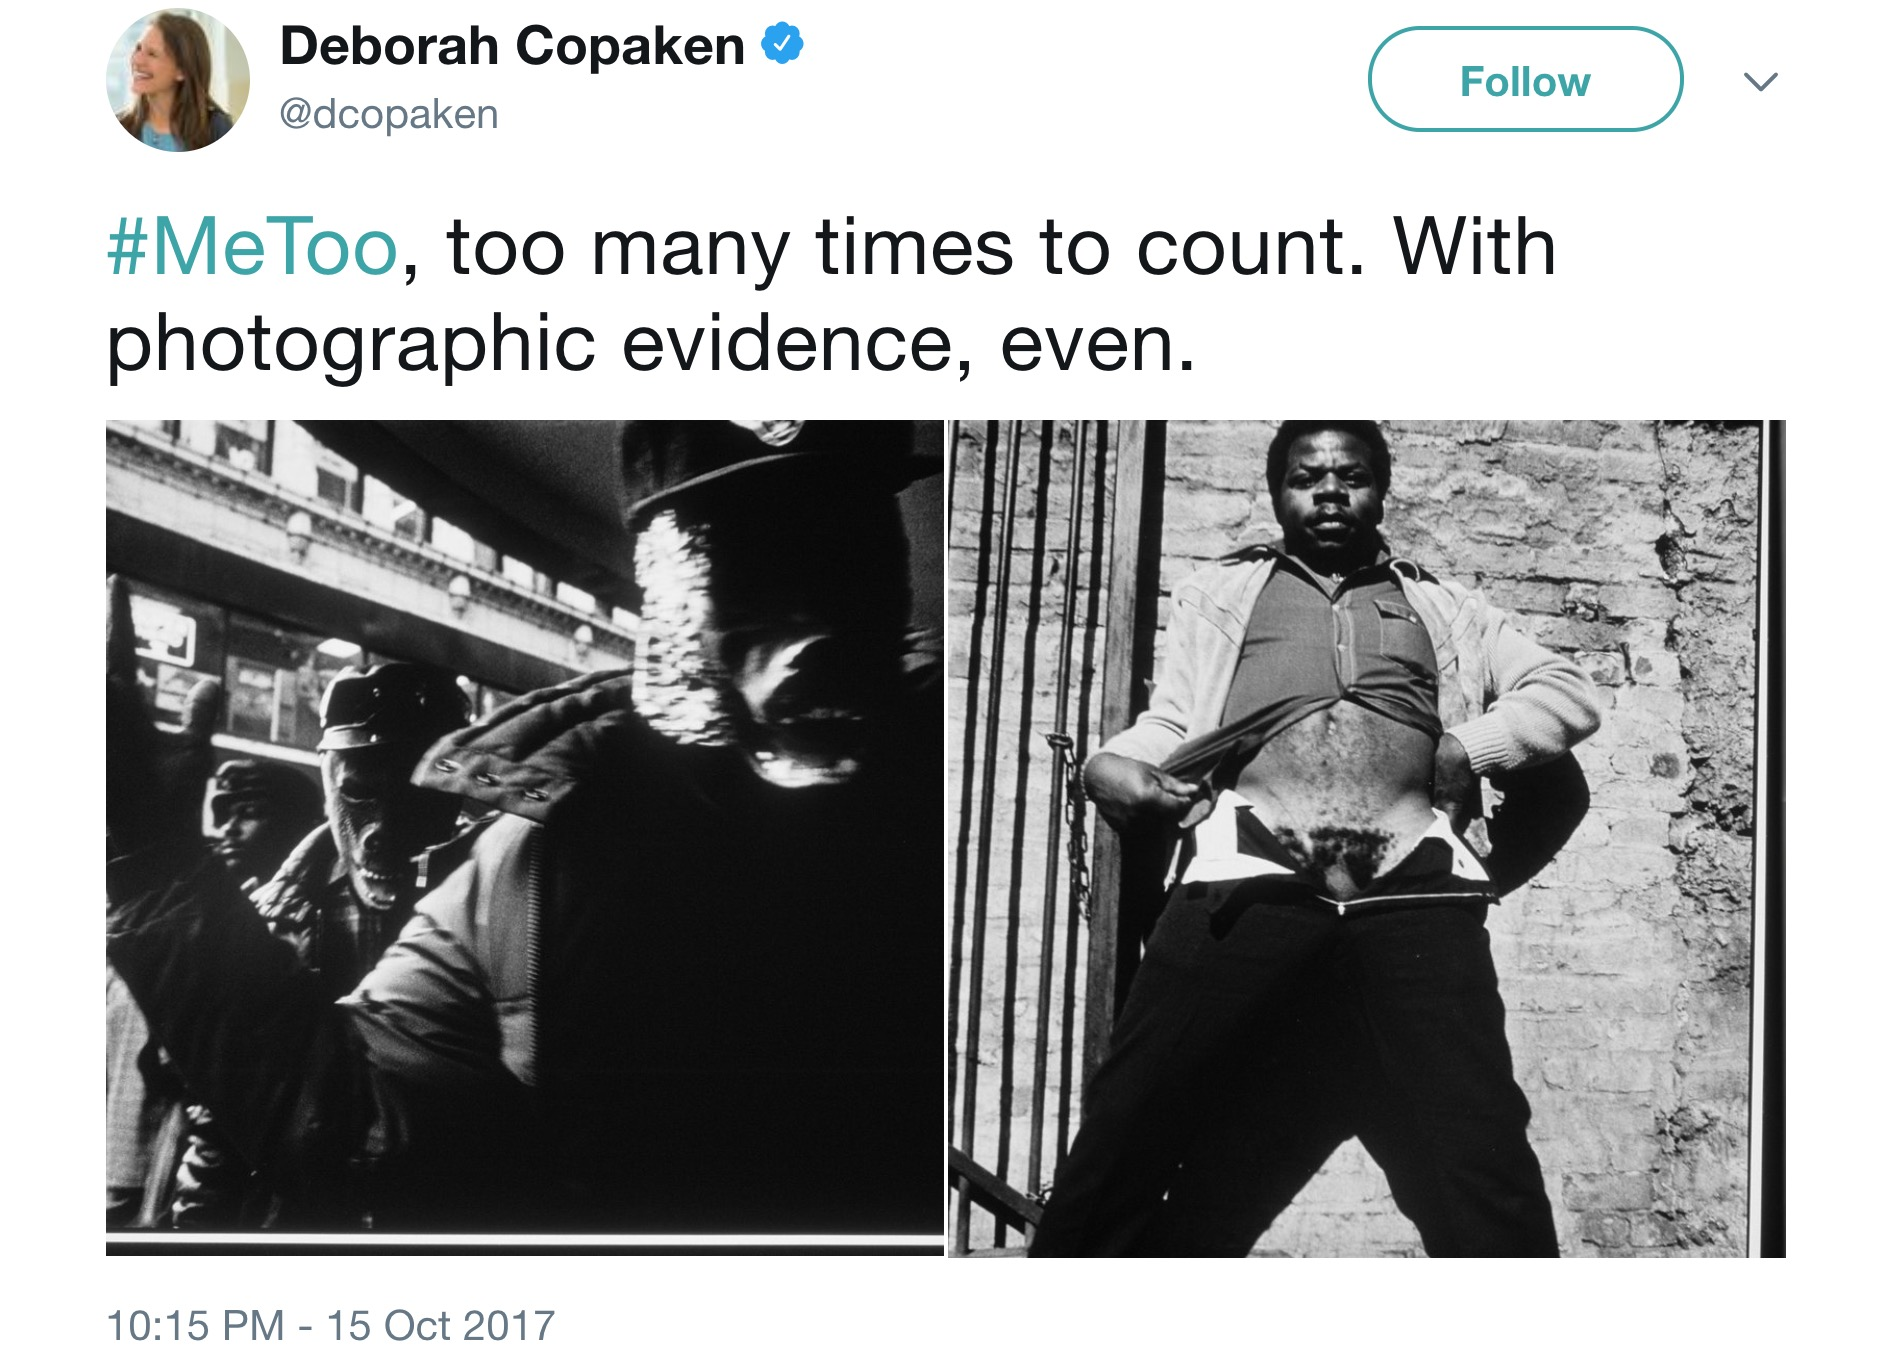 """Tweet from photographer Deborah Copaken on October 15, 2017: """"#MeToo, too many times to count. With photographic evidence, even."""" (includes two photographs of men graphically harassing Copaken, taken from her 1988 master's thesis, """"Shooting Straight"""")"""